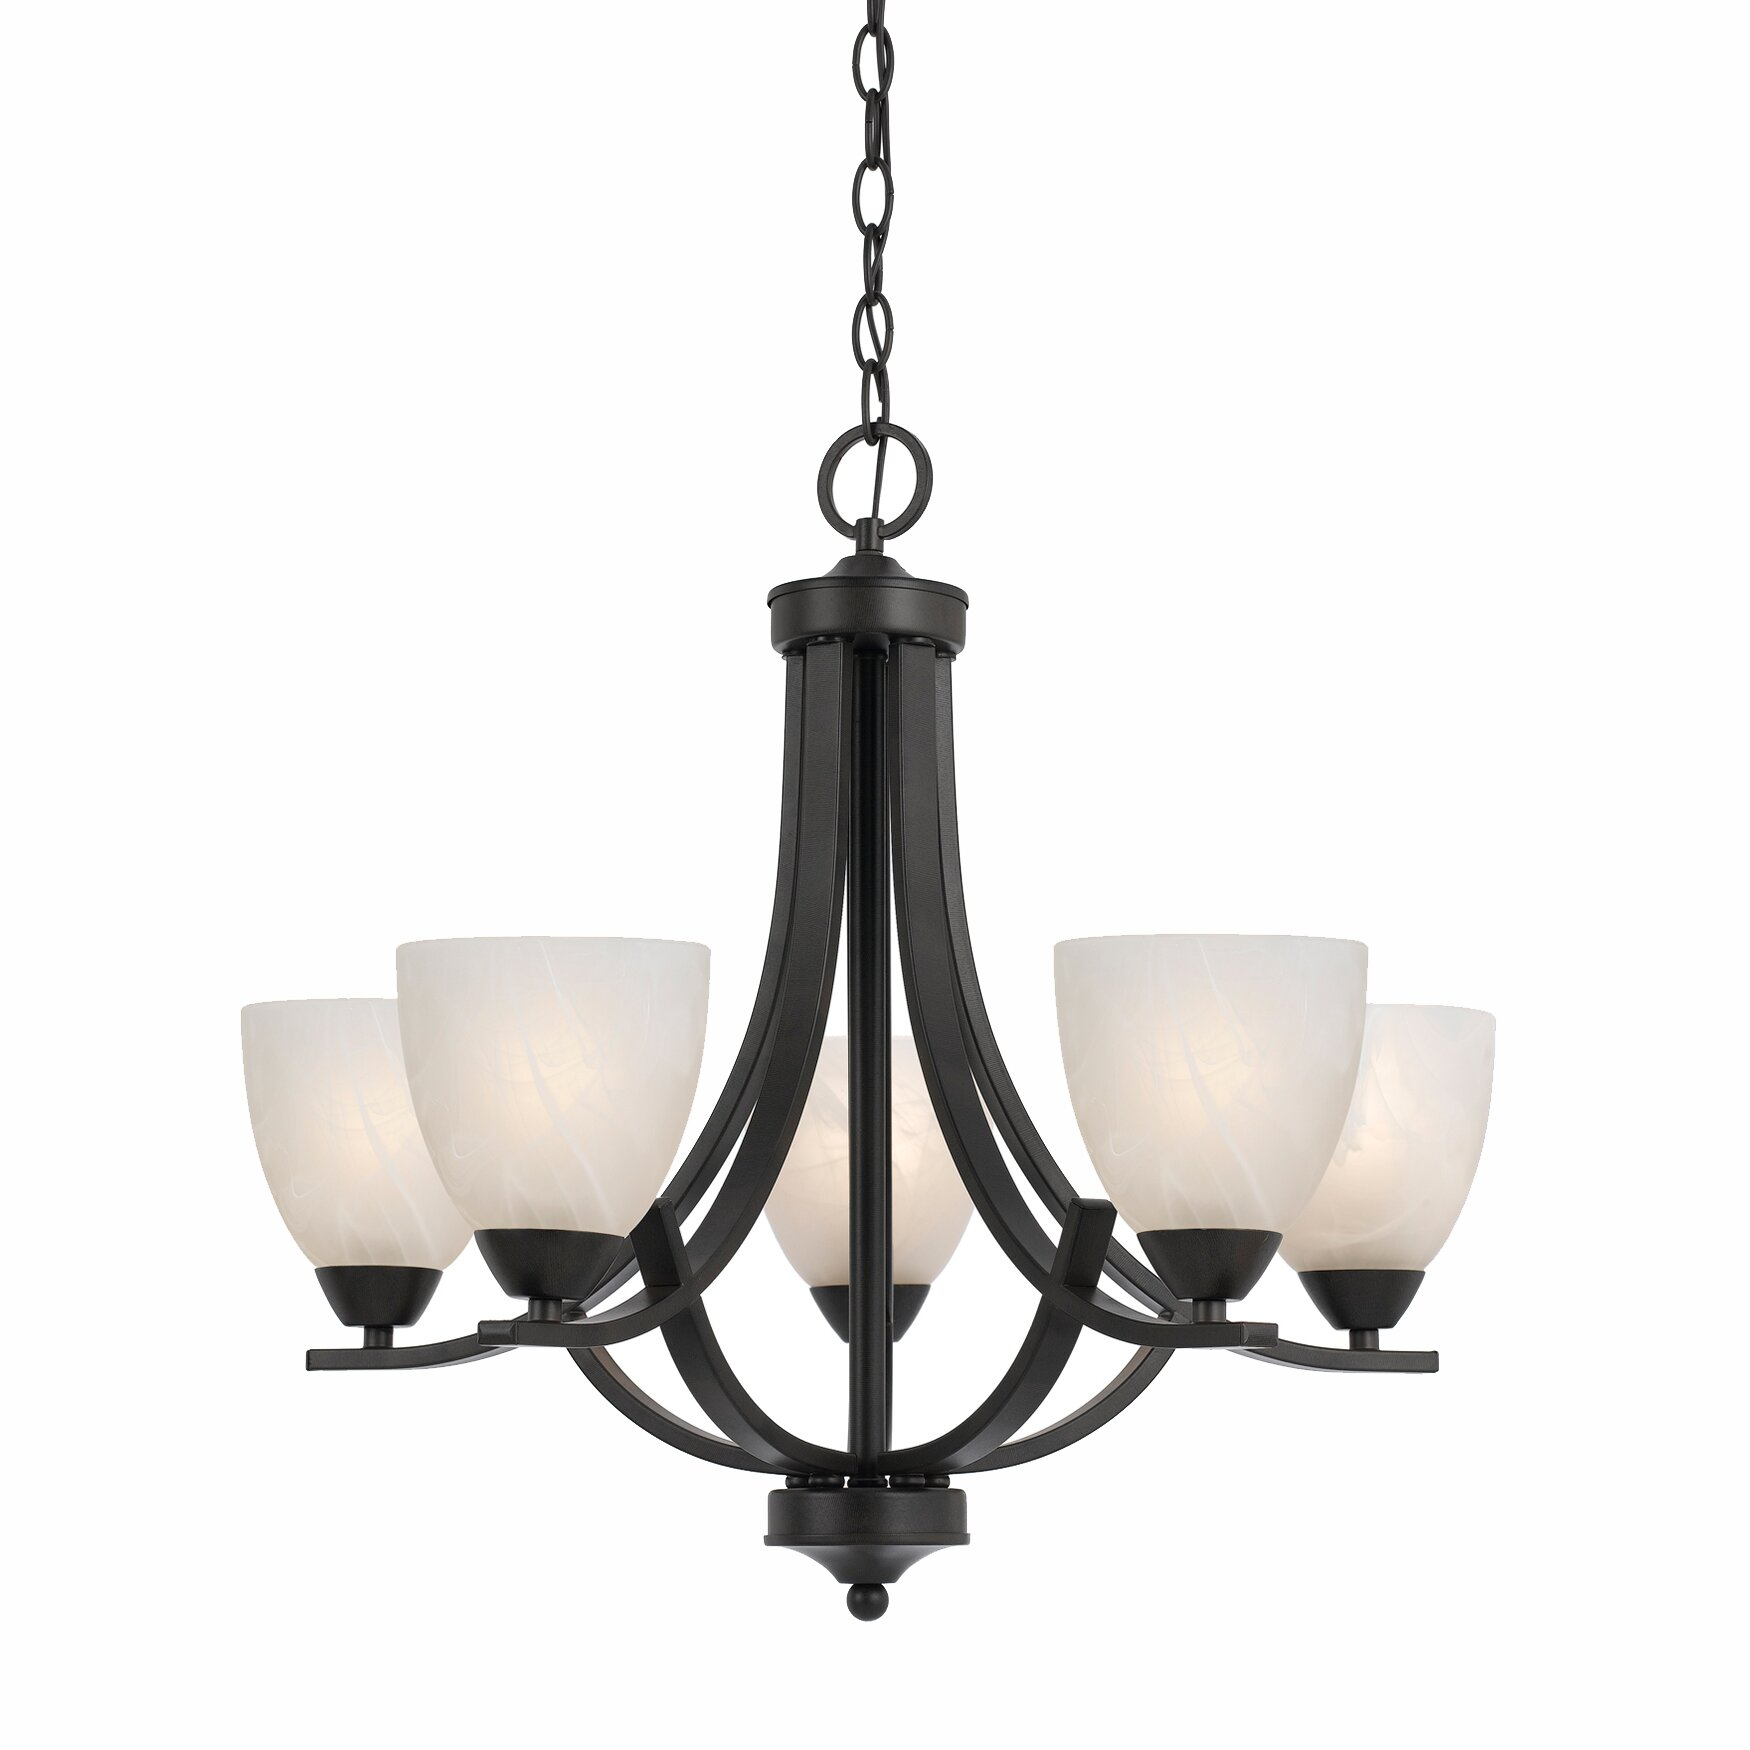 Lumenno value 5 light chandelier reviews wayfair - Lights and chandeliers ...